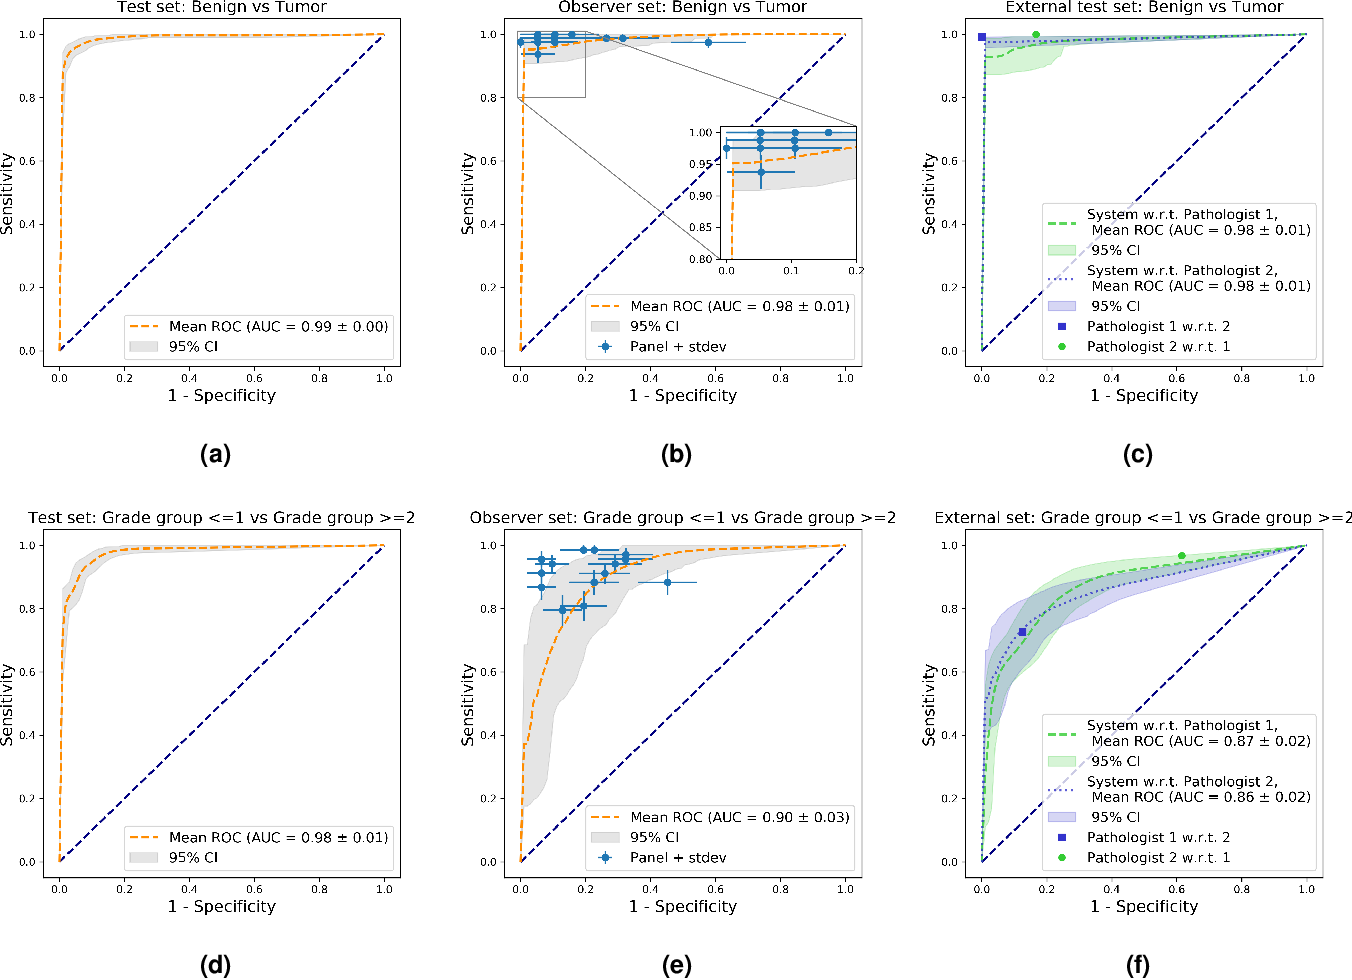 Figure 3 for Automated Gleason Grading of Prostate Biopsies using Deep Learning